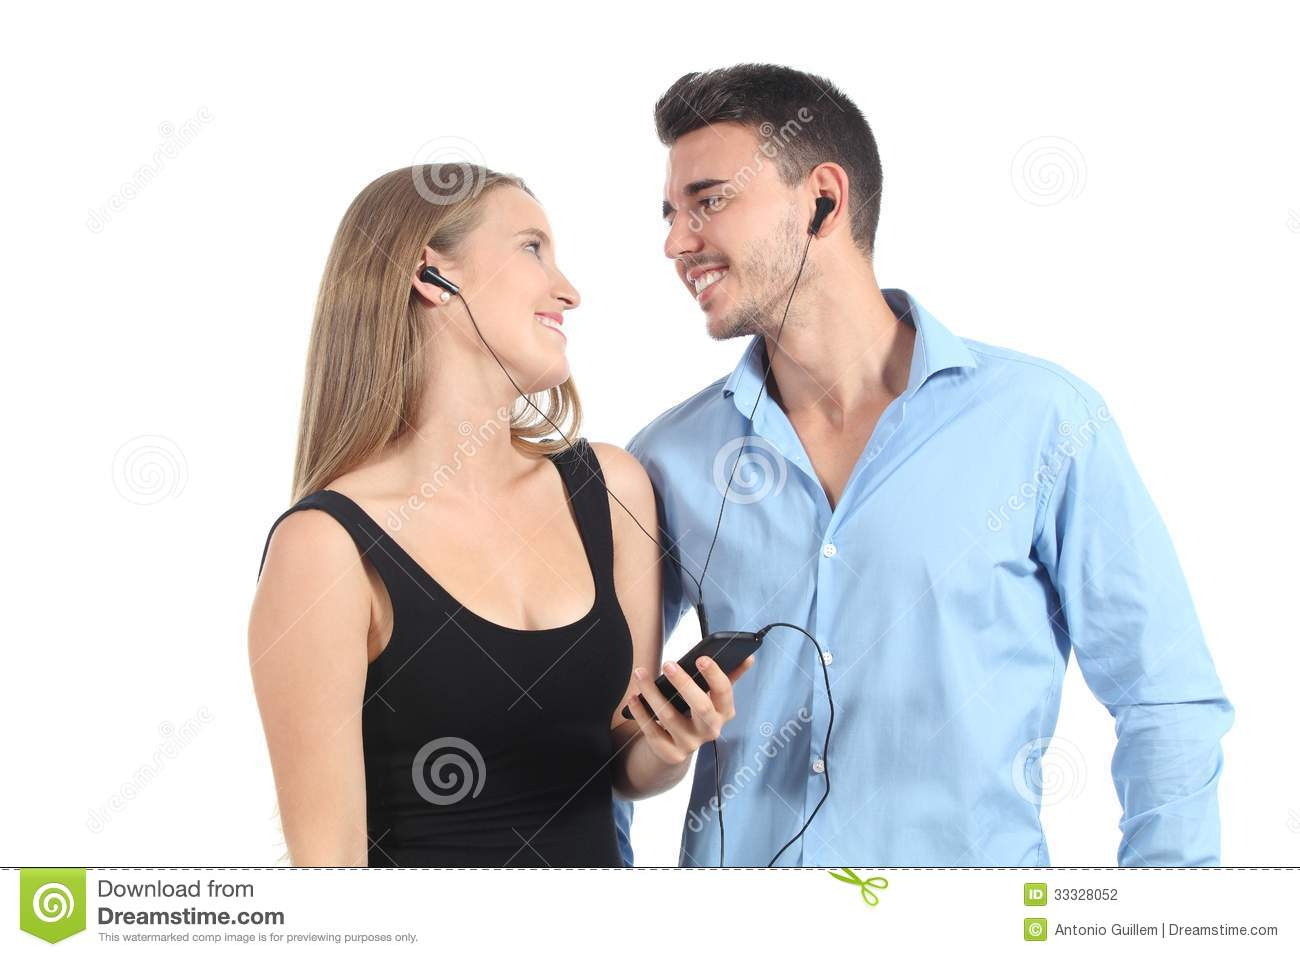 attractive-couple-sharing-music-headphones-isolated-white-background-33328052.jpeg